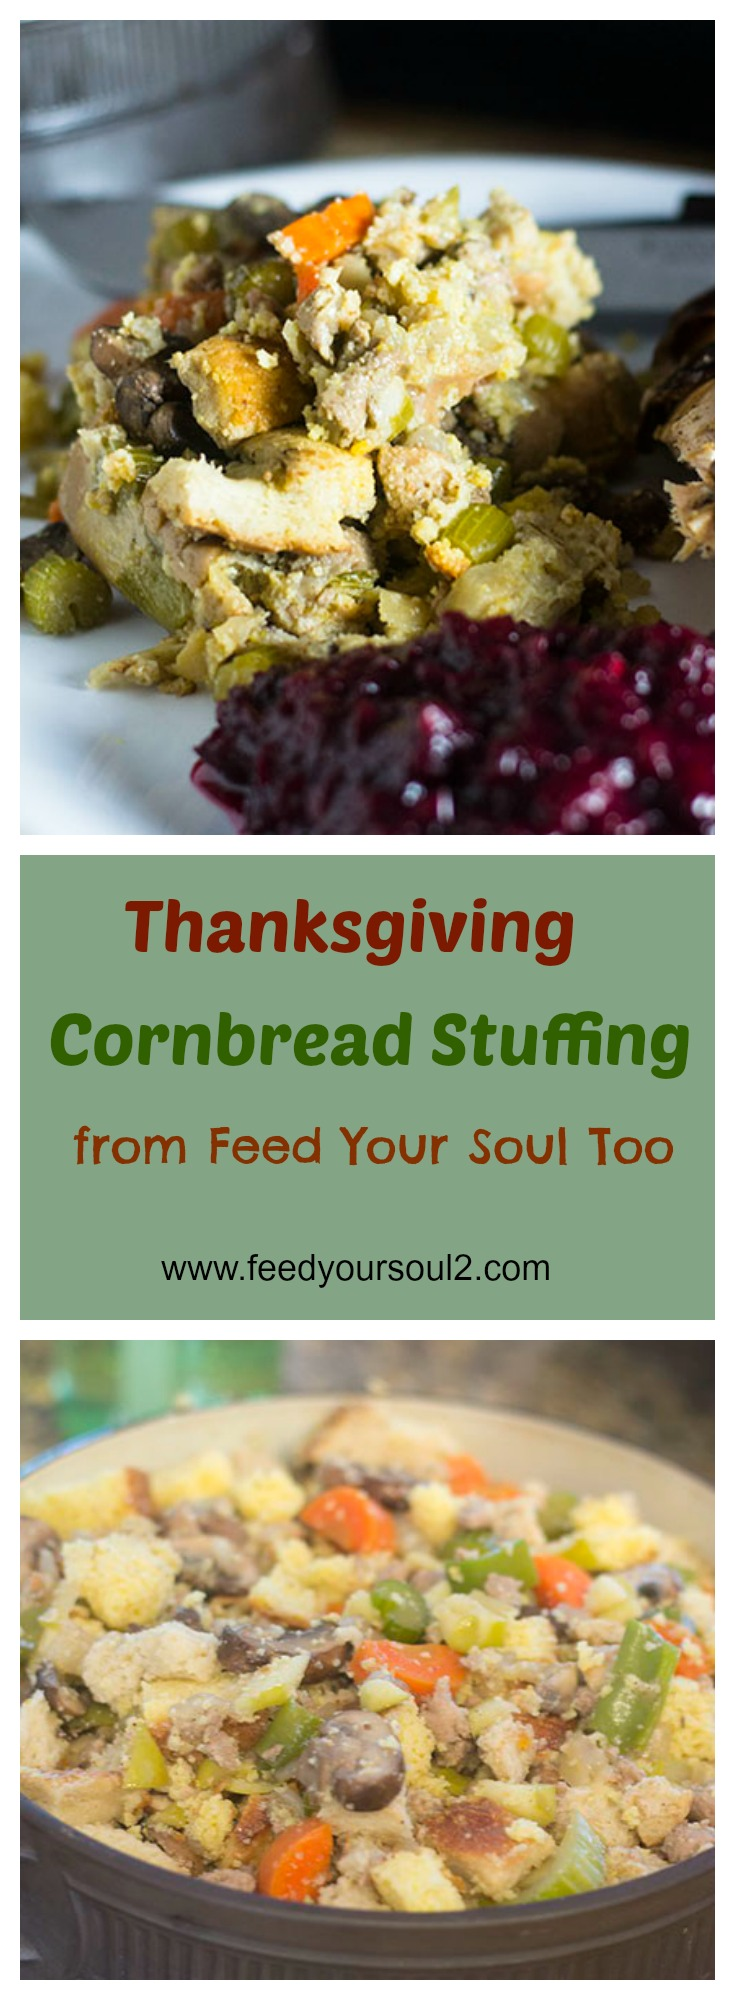 Thanksgiving Cornbread Stuffing #Thanksgiving #sidedish #sausage #apples | feedyoursoul2.com